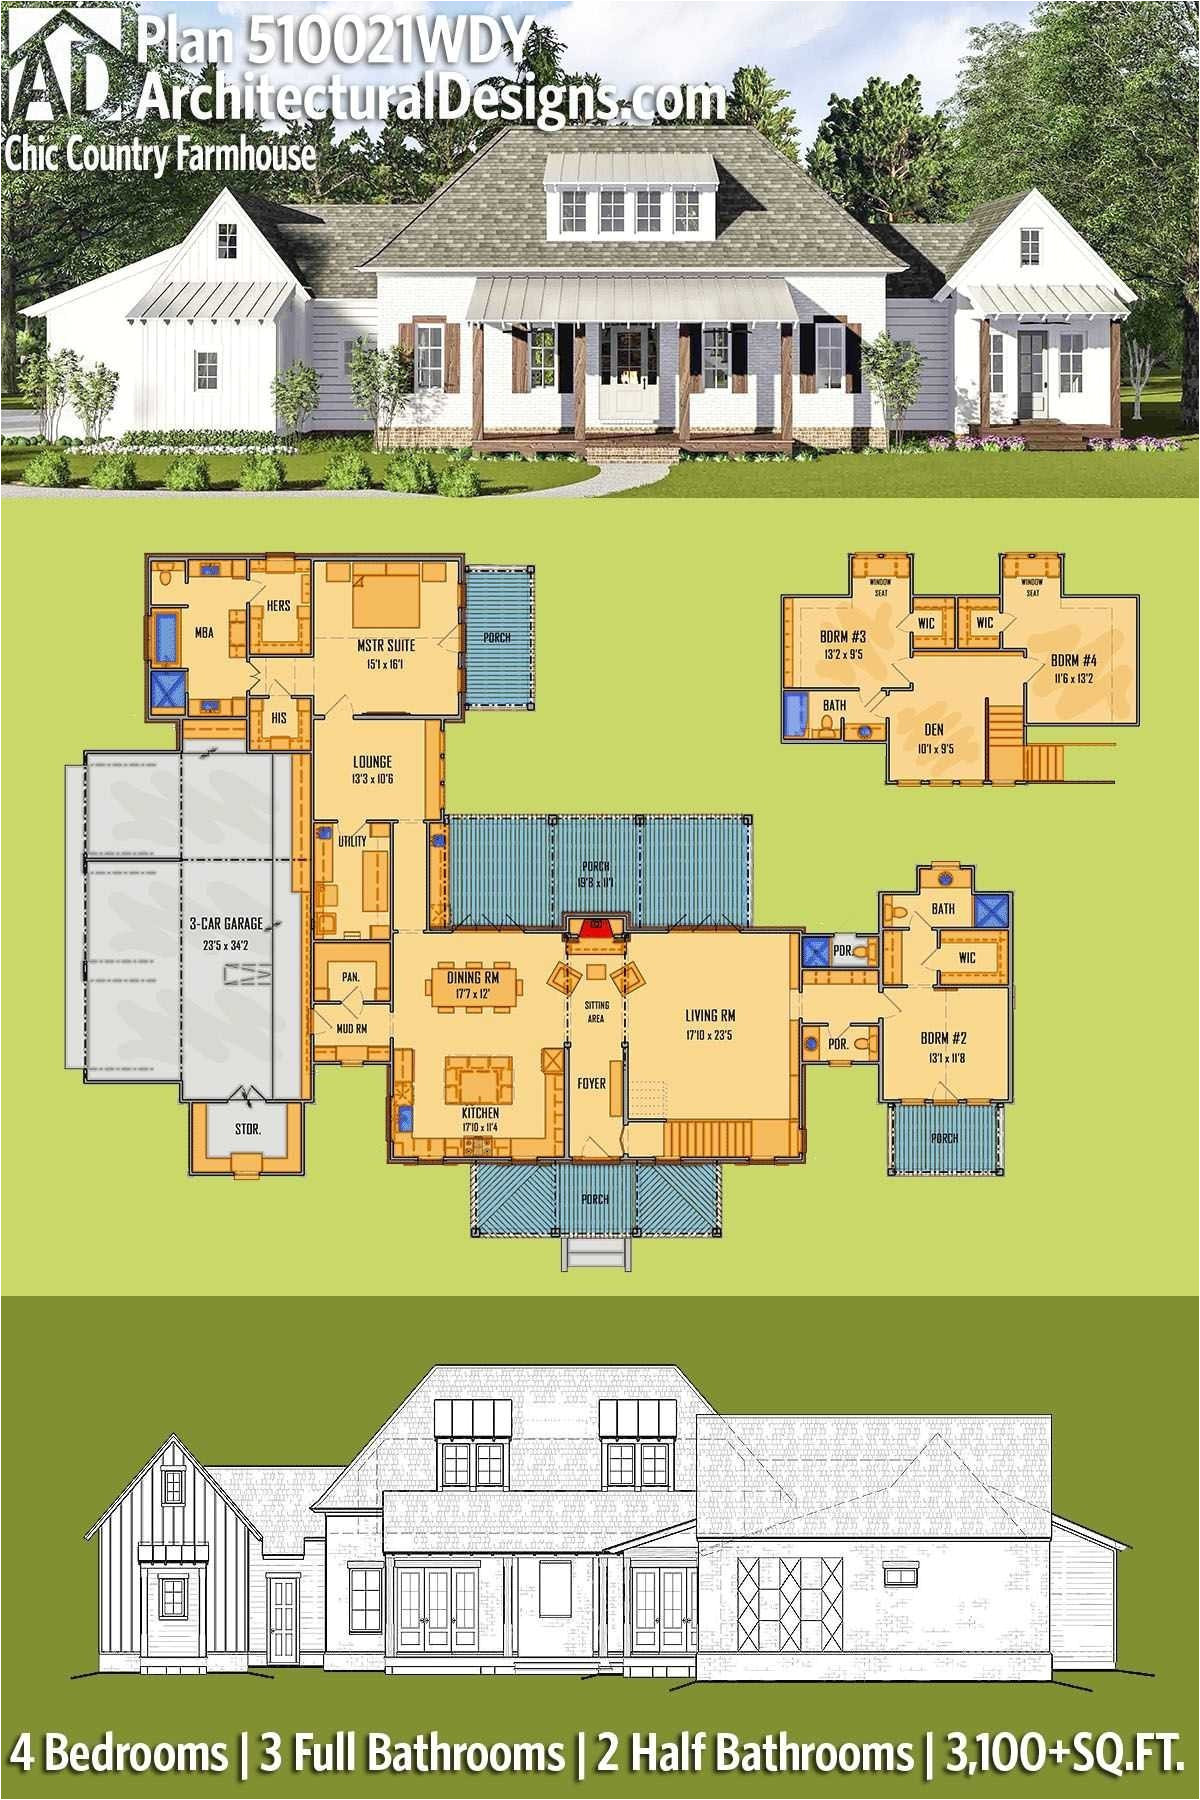 federal style house plans lovely colonial house plans 3 car garage best lexar homes floor plans